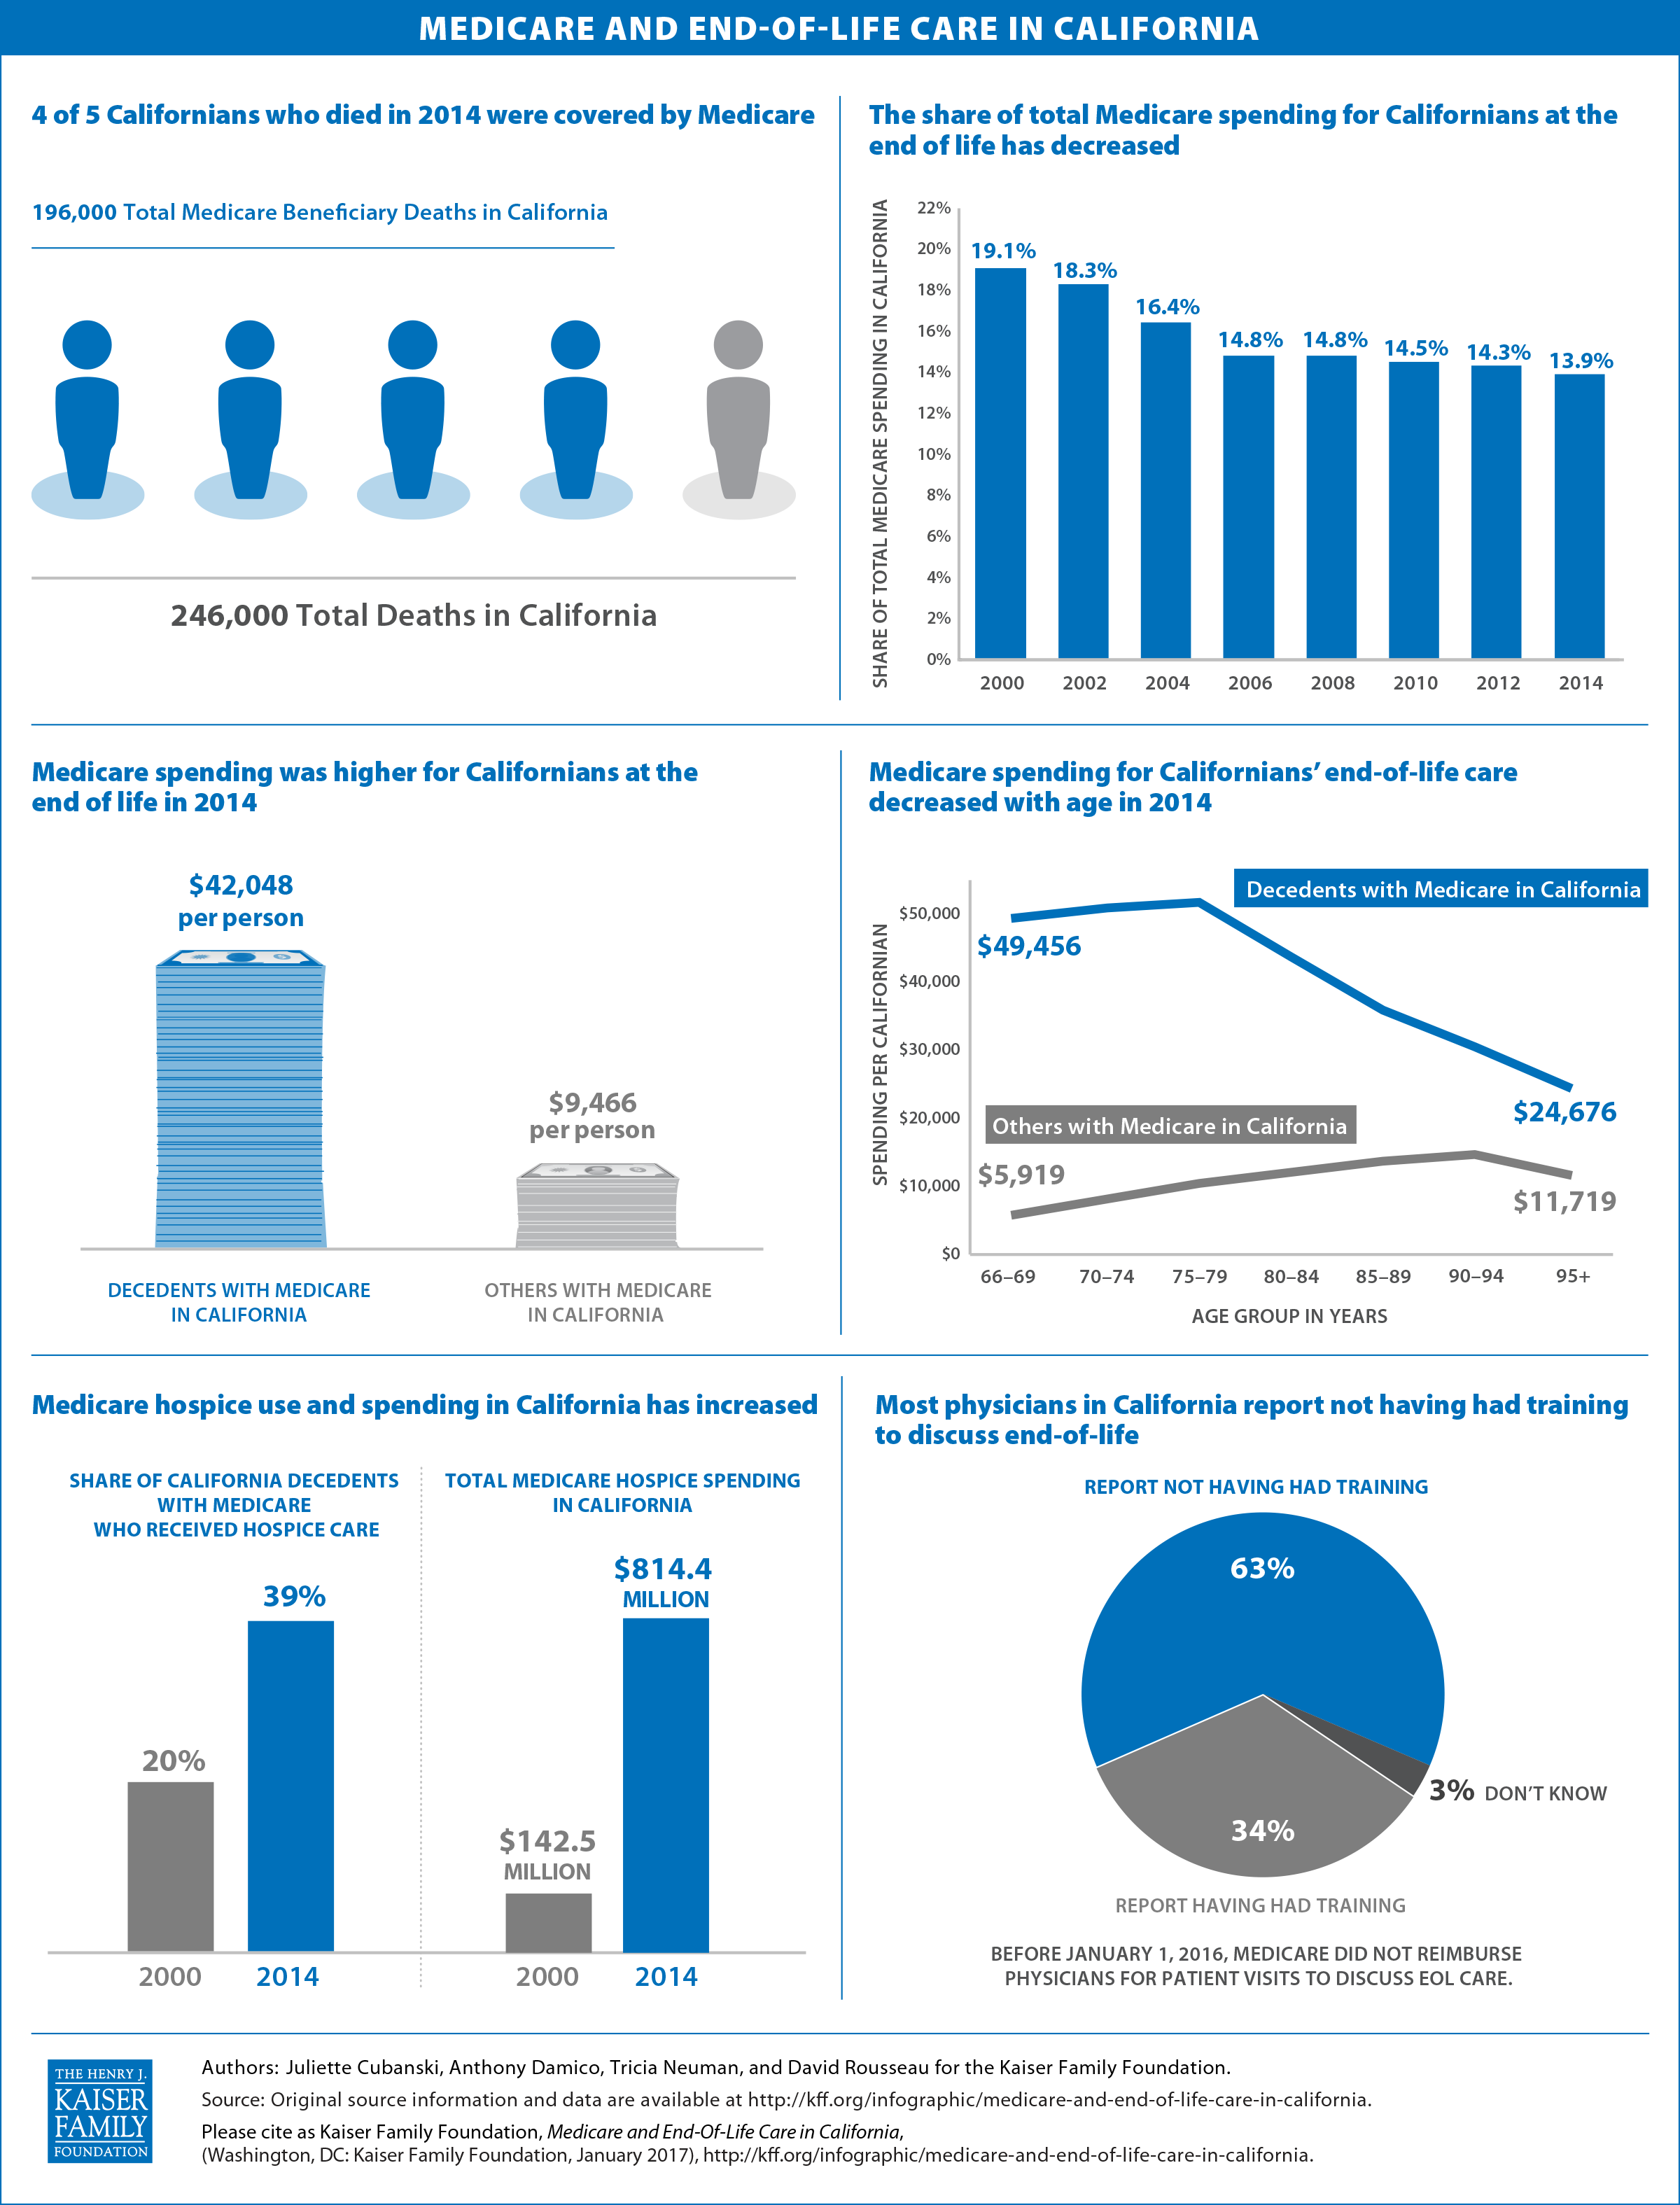 infographic-medicare-and-end-of-life-care-in-california